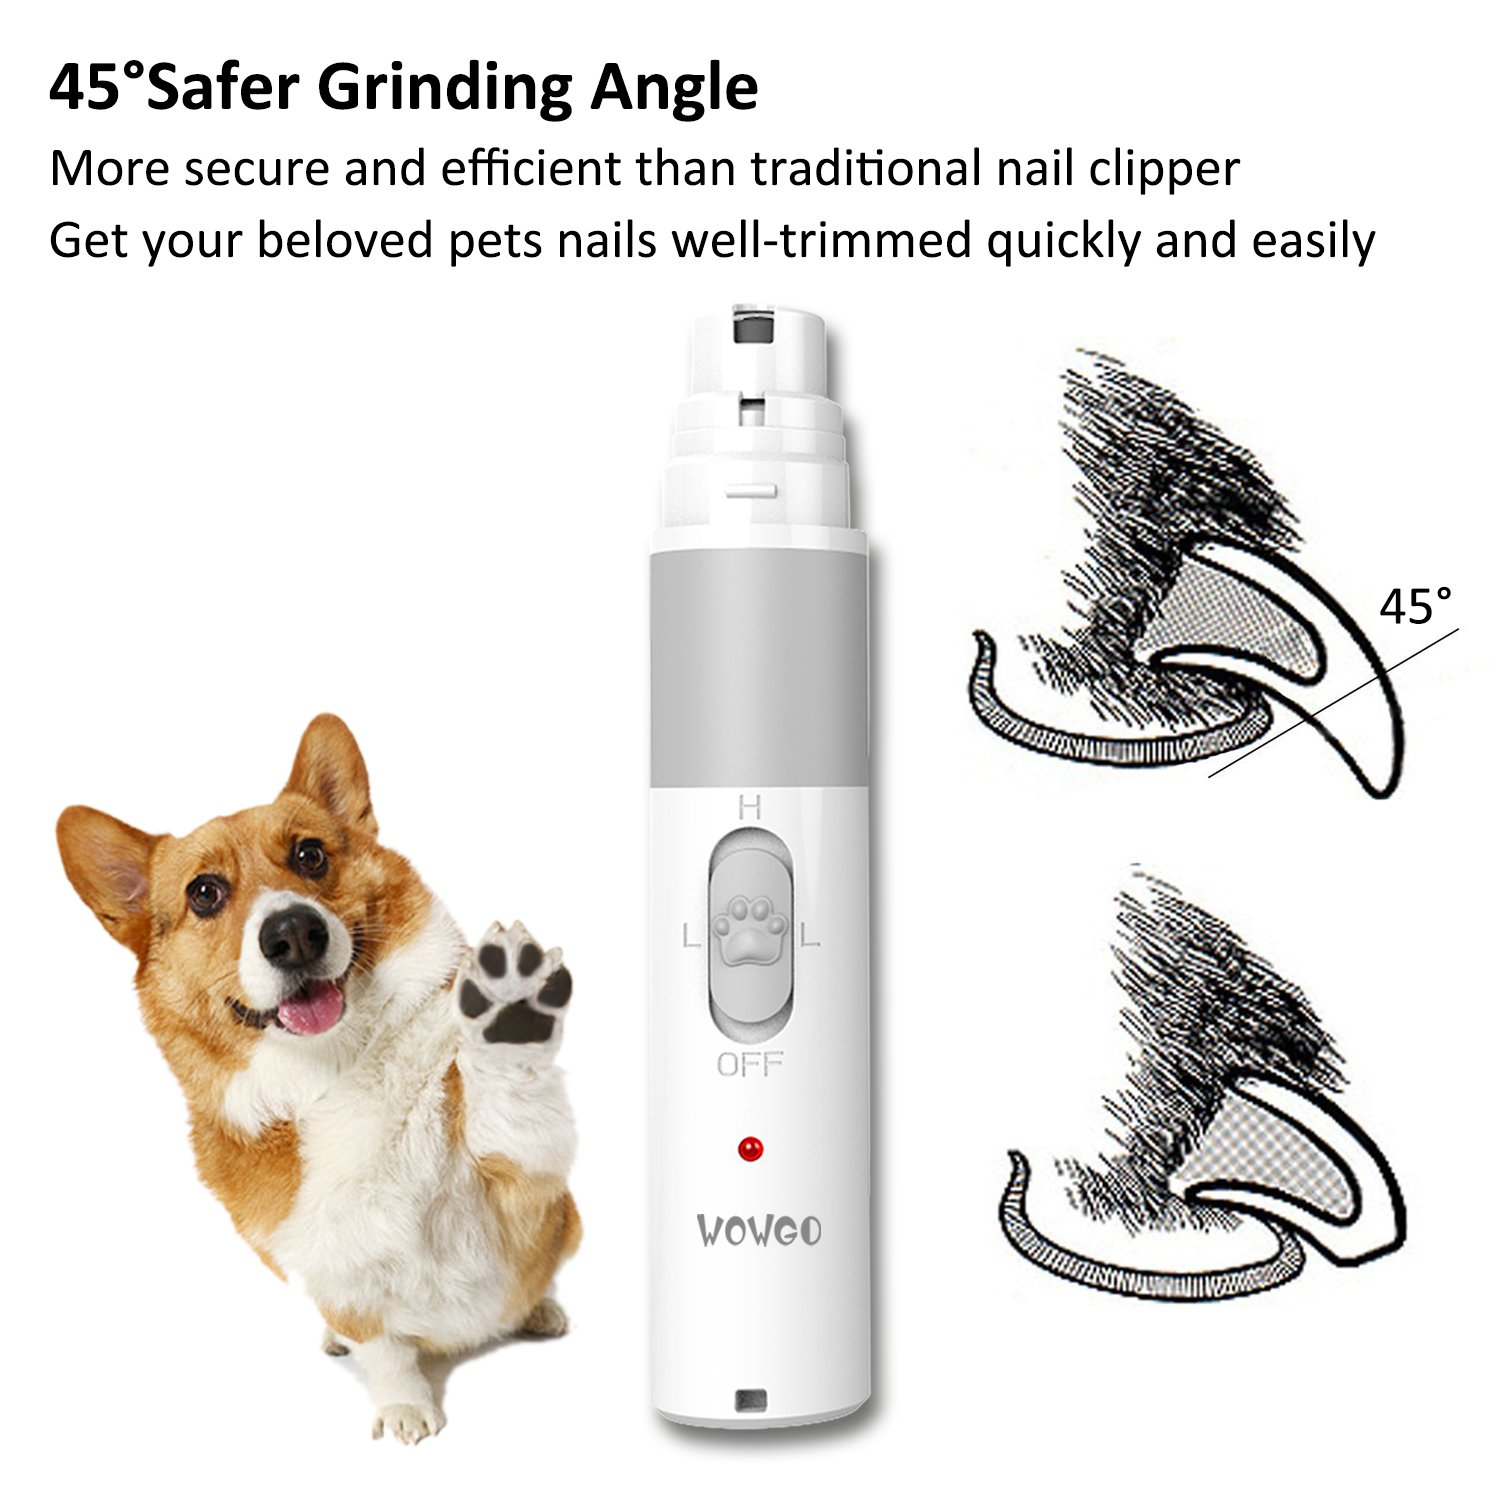 Pet Nail Grinder Rechargeable USB Charging Electric Gentle Nail Trimmer Clipper with Nail File Grooming Tool Painless for Small Medium Large Dogs Cats Pets Paws Updated Generations by WOWGO